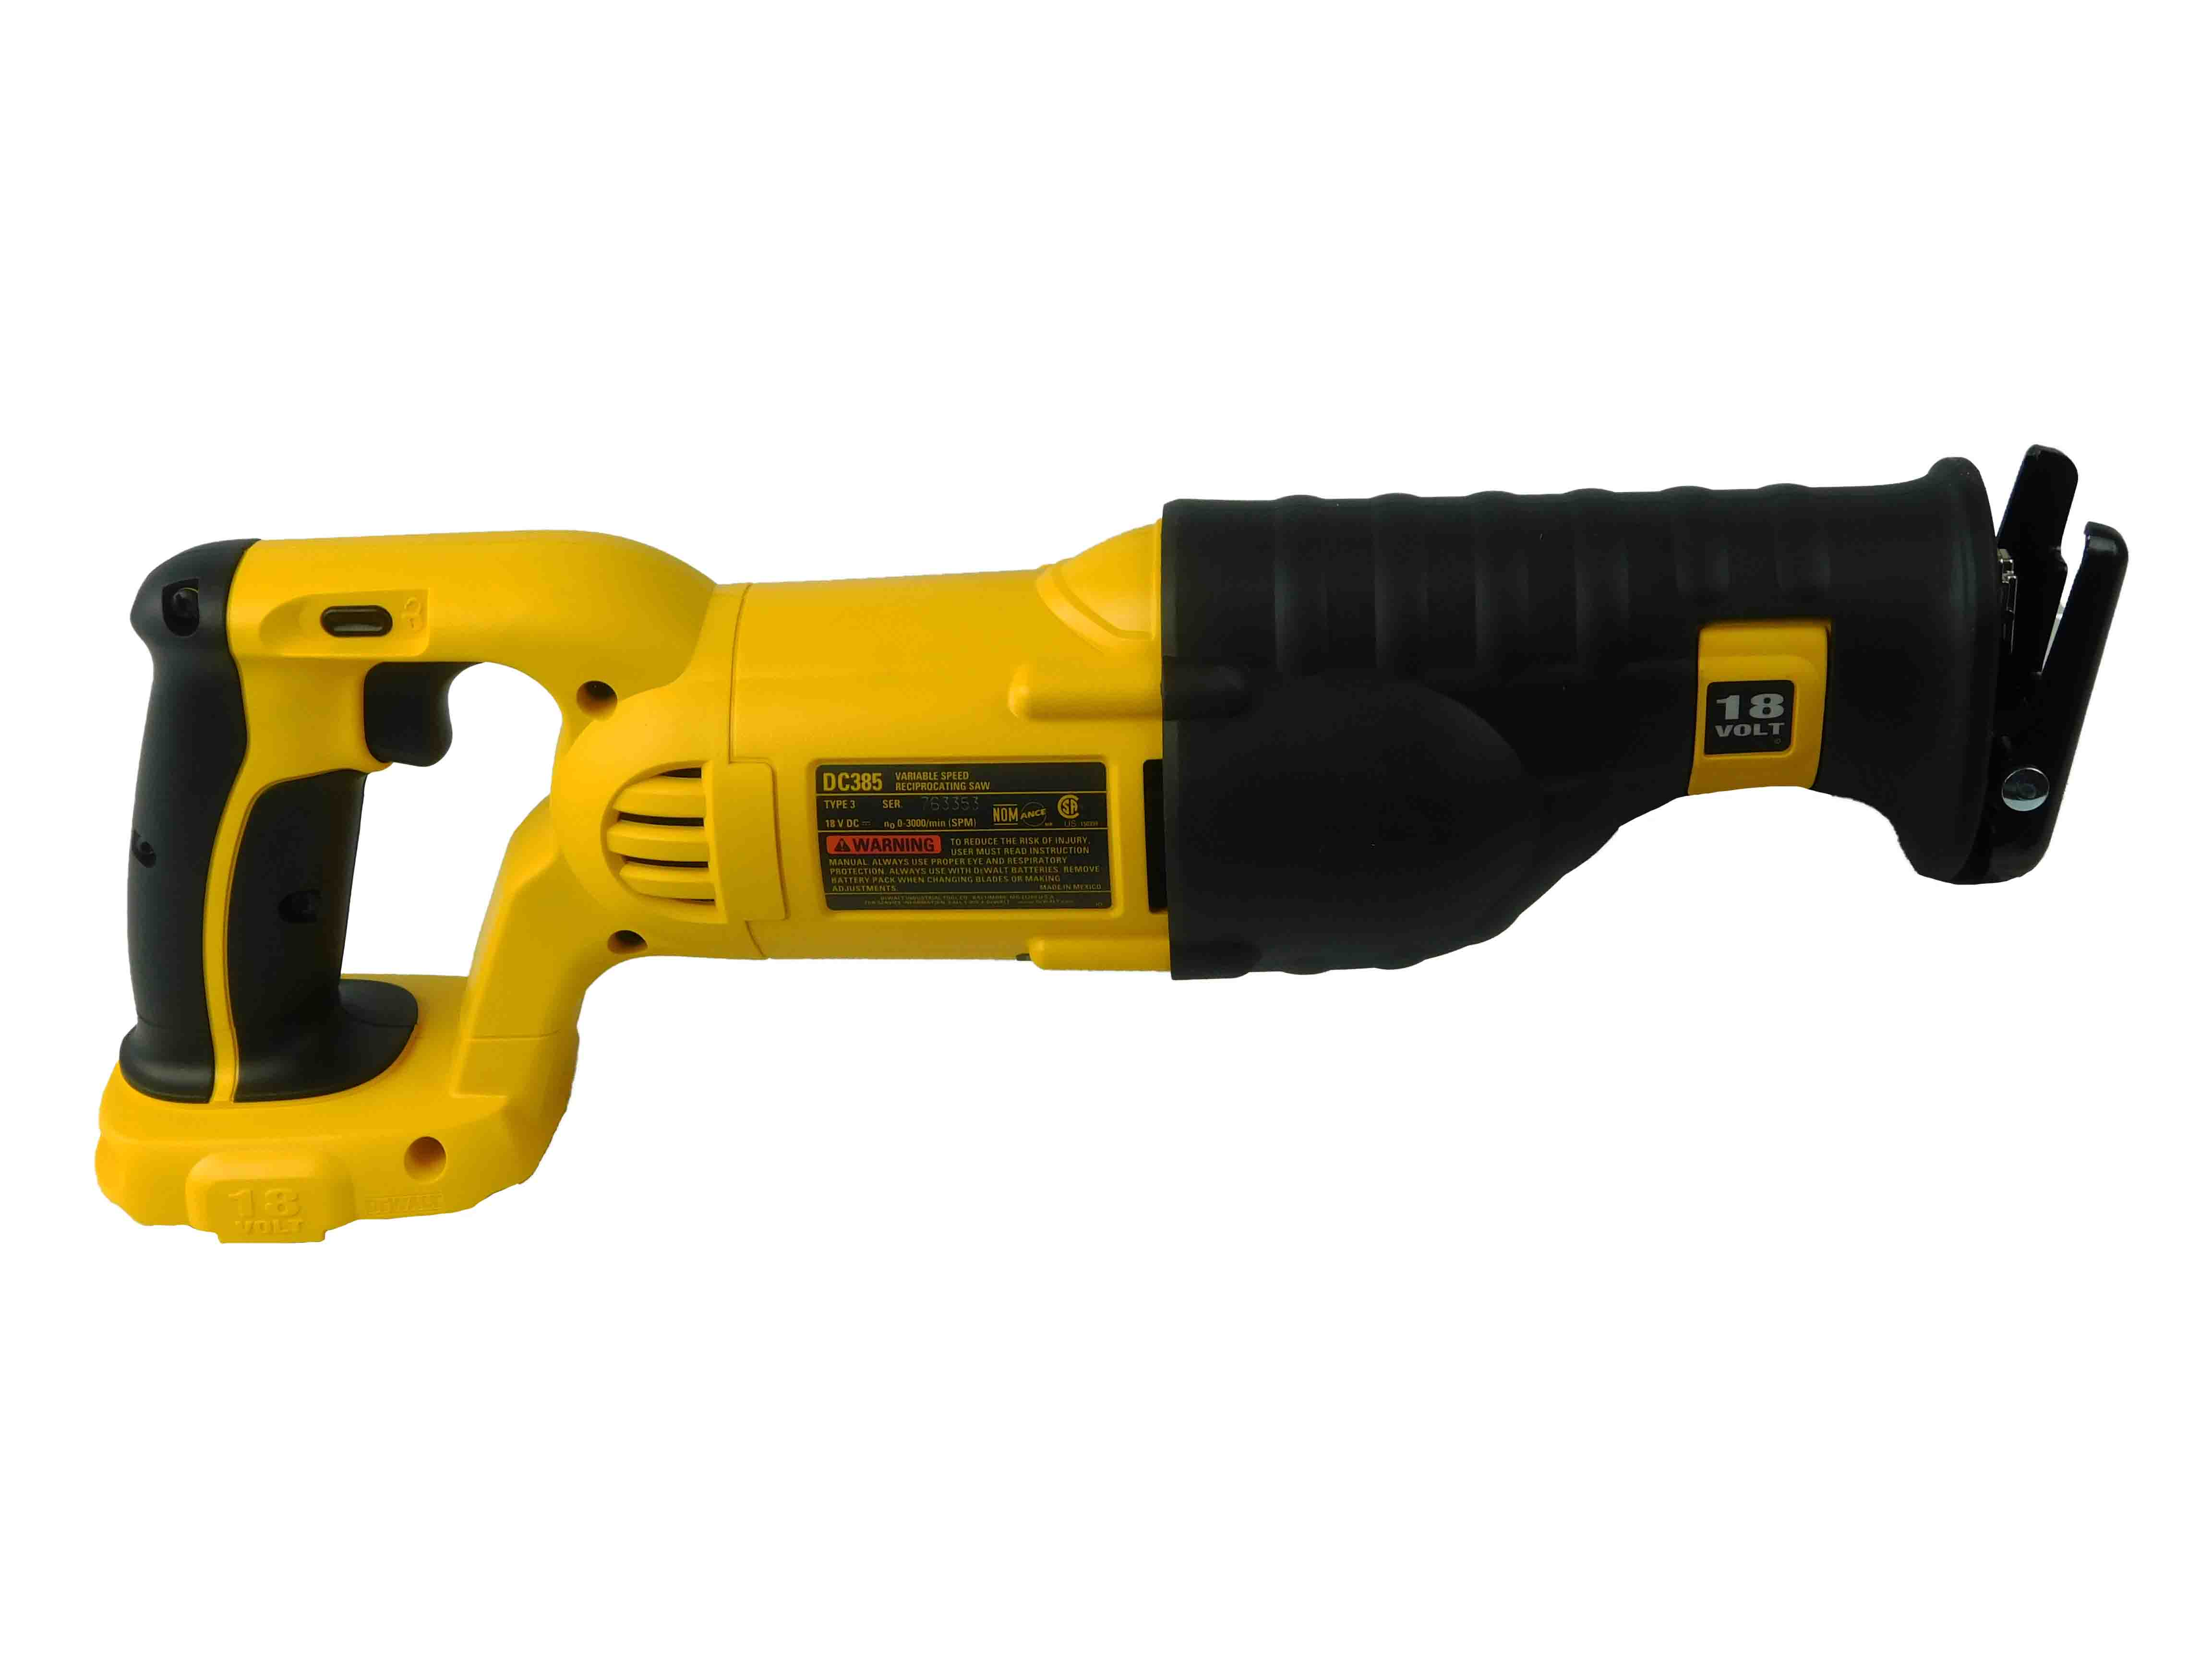 Dewalt-DC385-18V-Reciprocating-Sawzall-Variable-Speed-Cordless-Bare-Tool-image-5